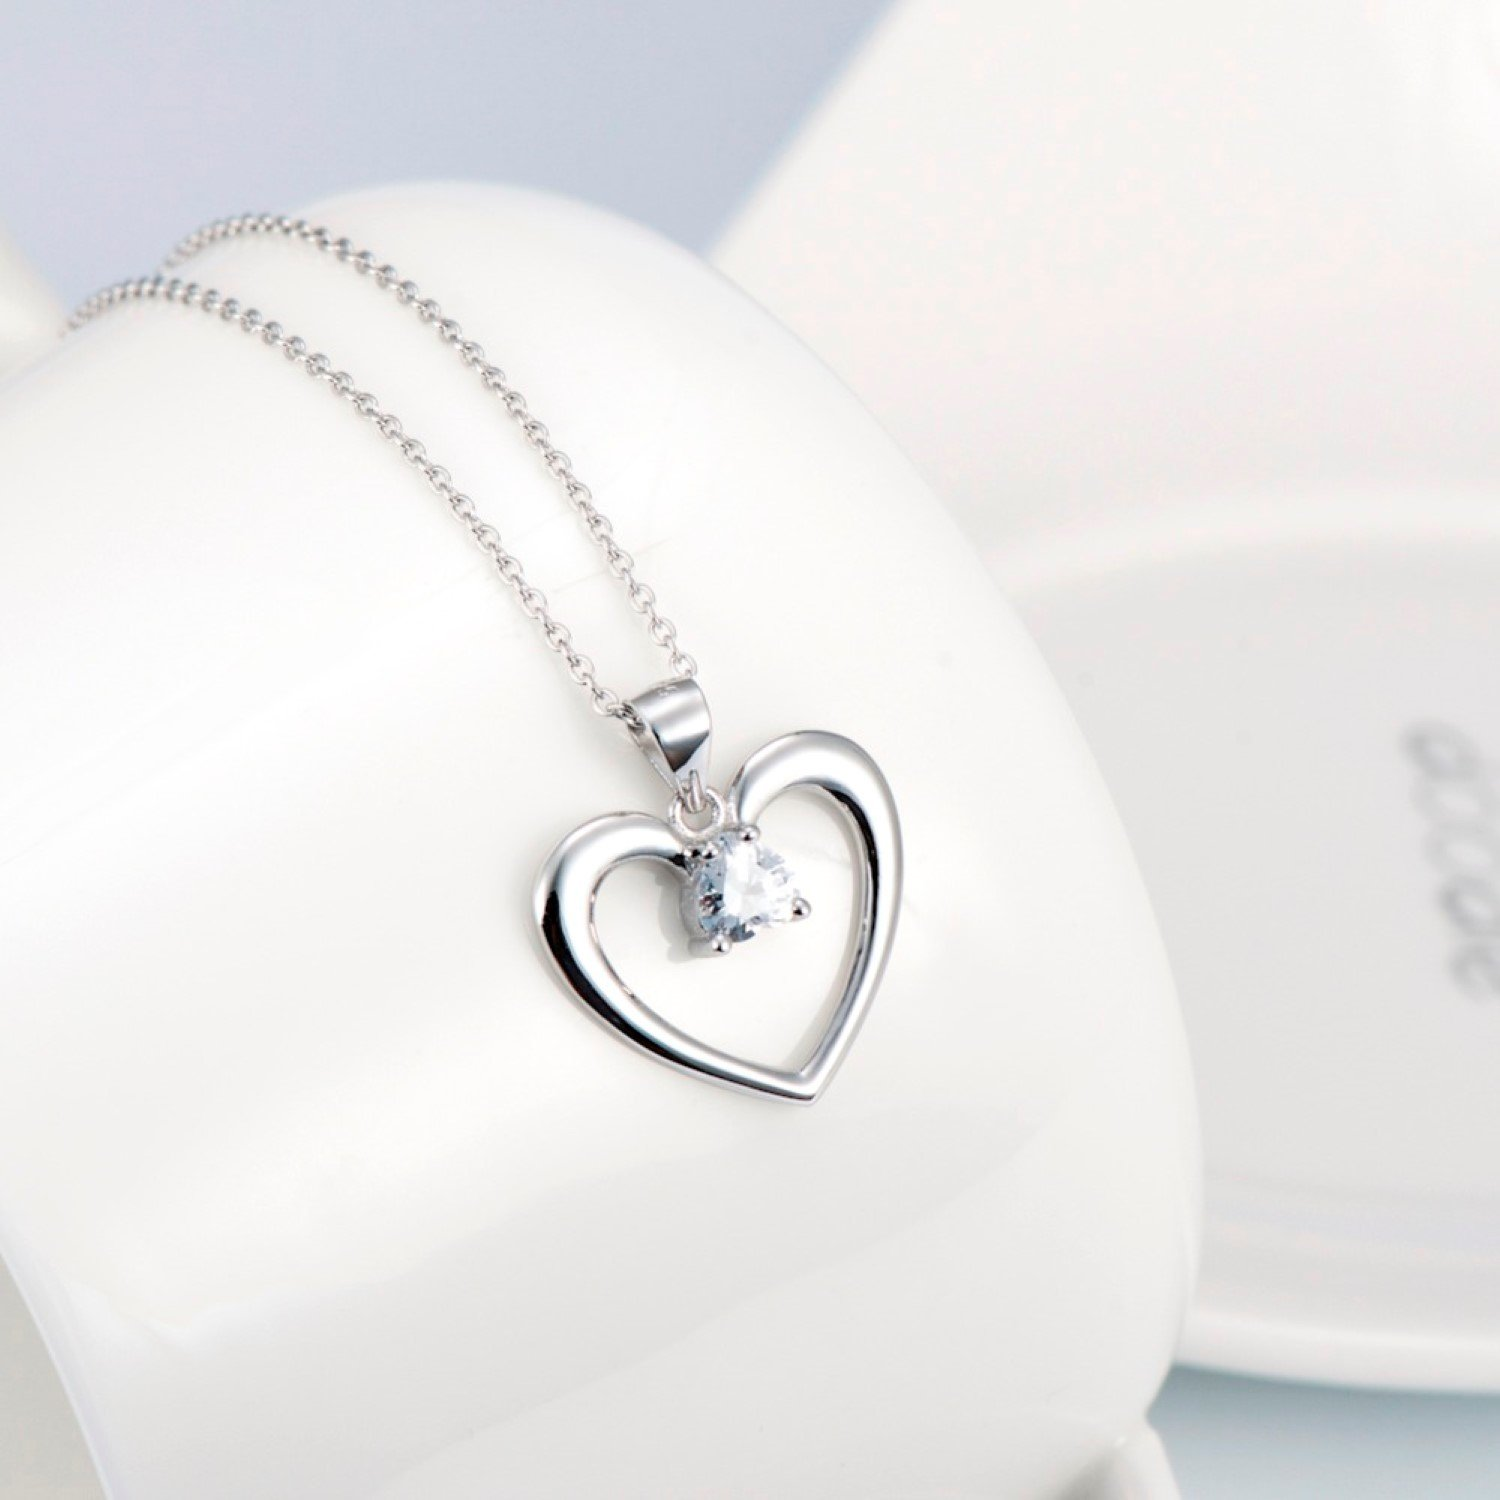 CS-DB Pendants Necklaces Silver Love Heart Luxury Jewelry Girls